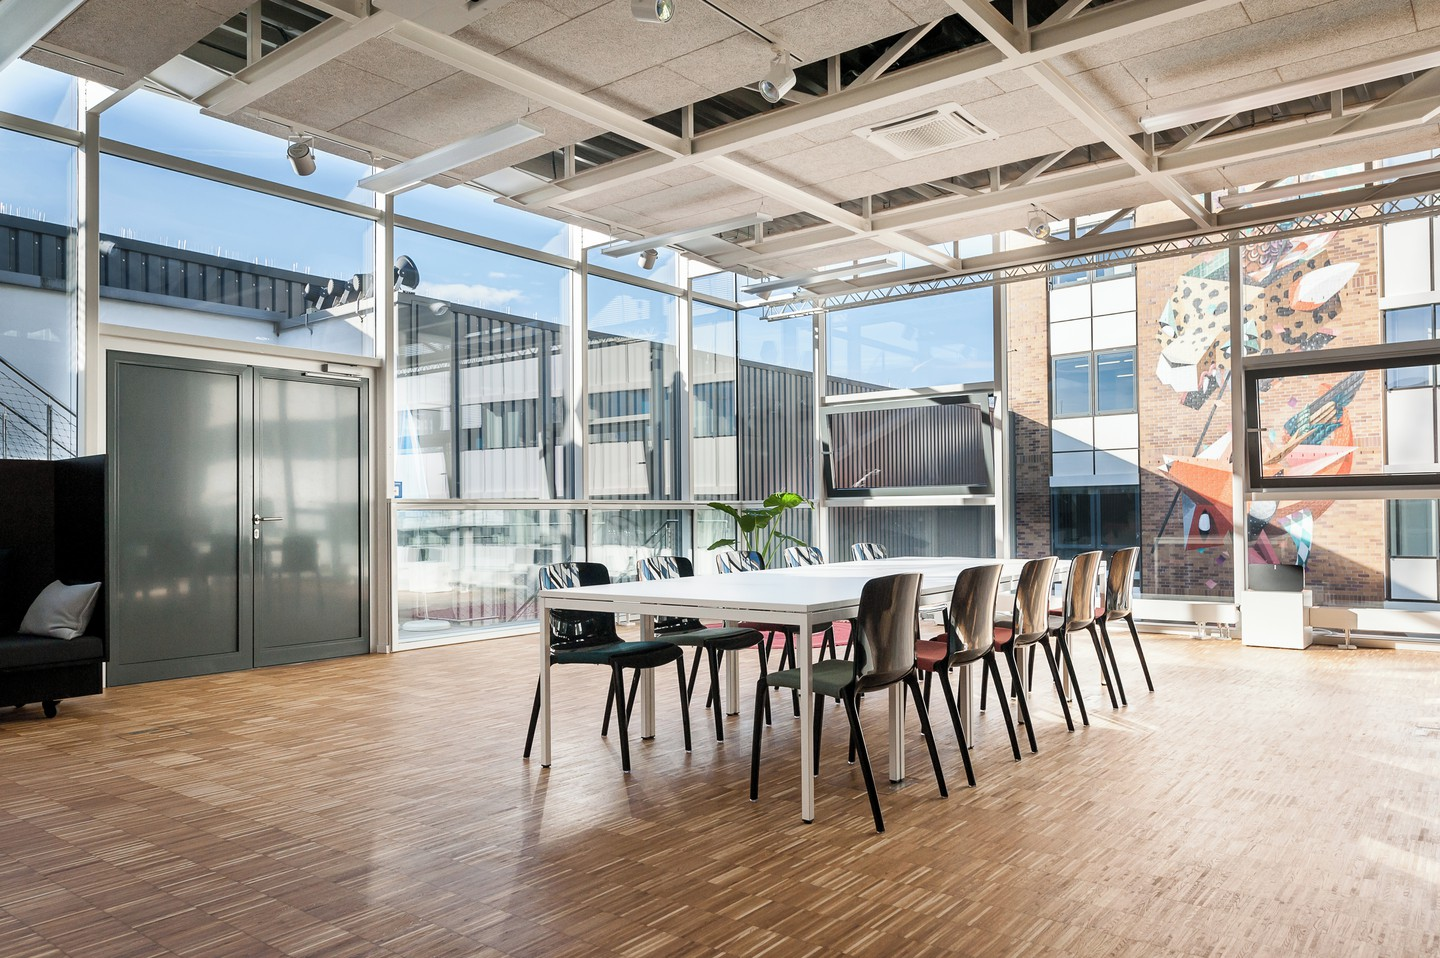 Munich conference rooms Unusual CORVATSCH  - Loft Location & Creative Space image 11